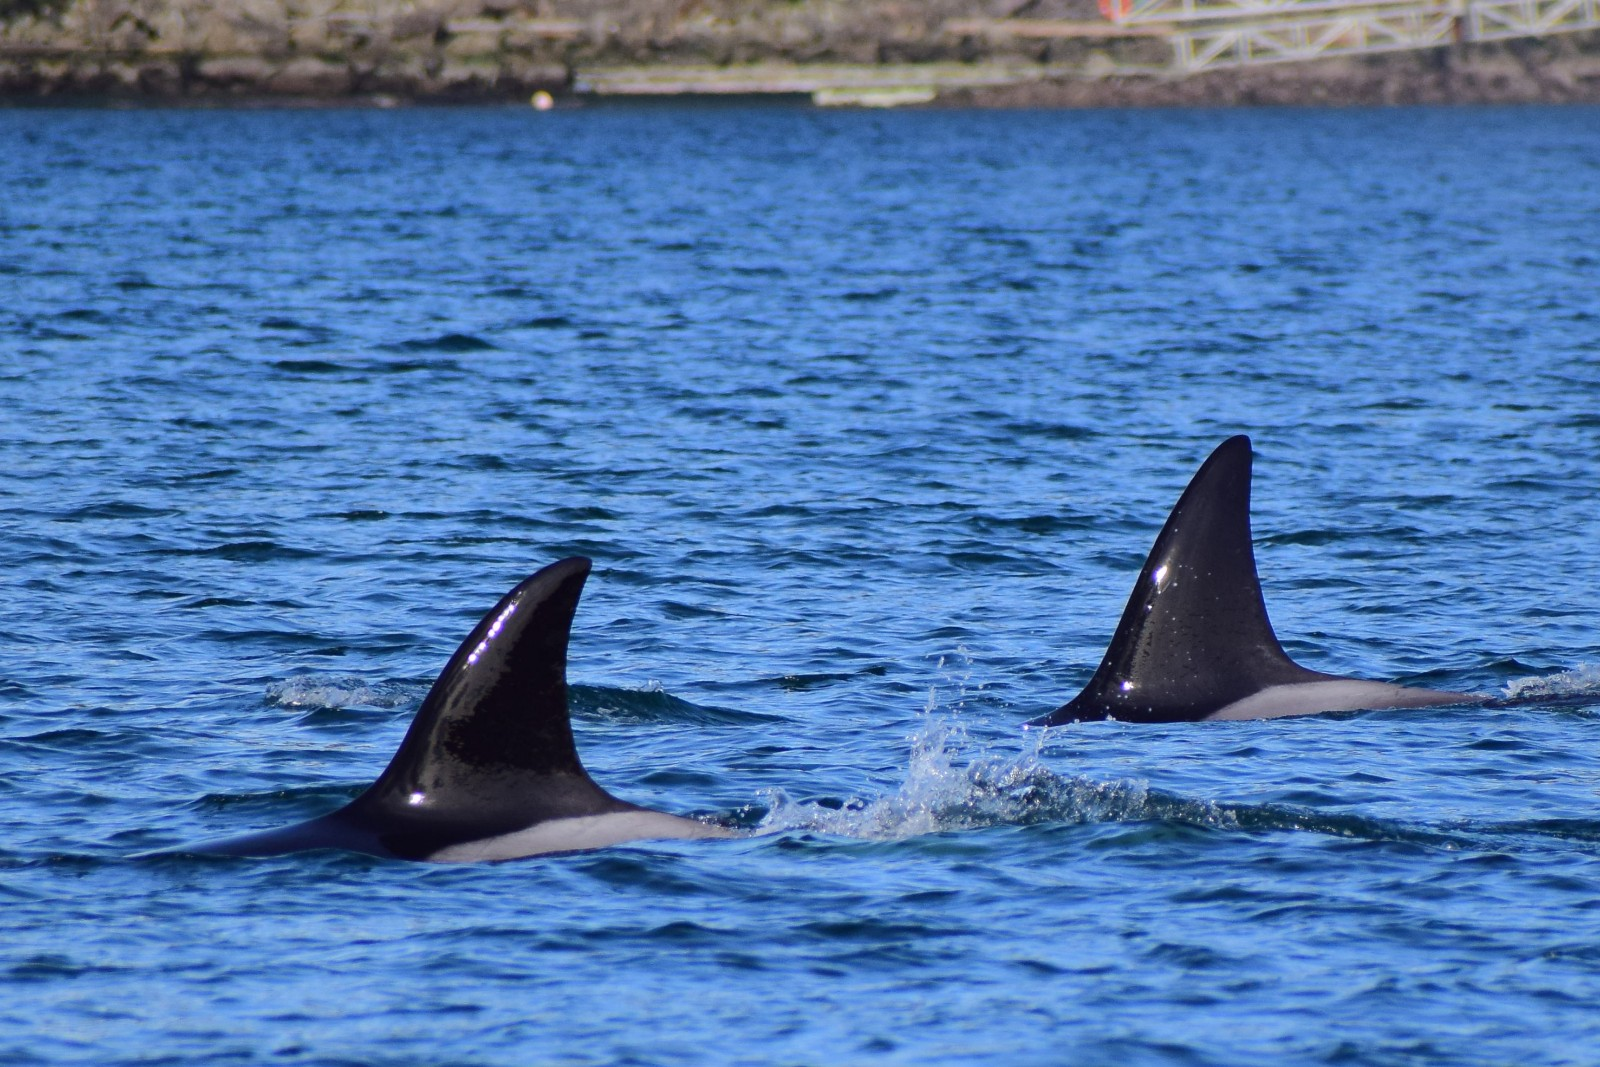 Dorsal fin of two Transient Orca. Picture taken by Captain Ian with a zoom lens..